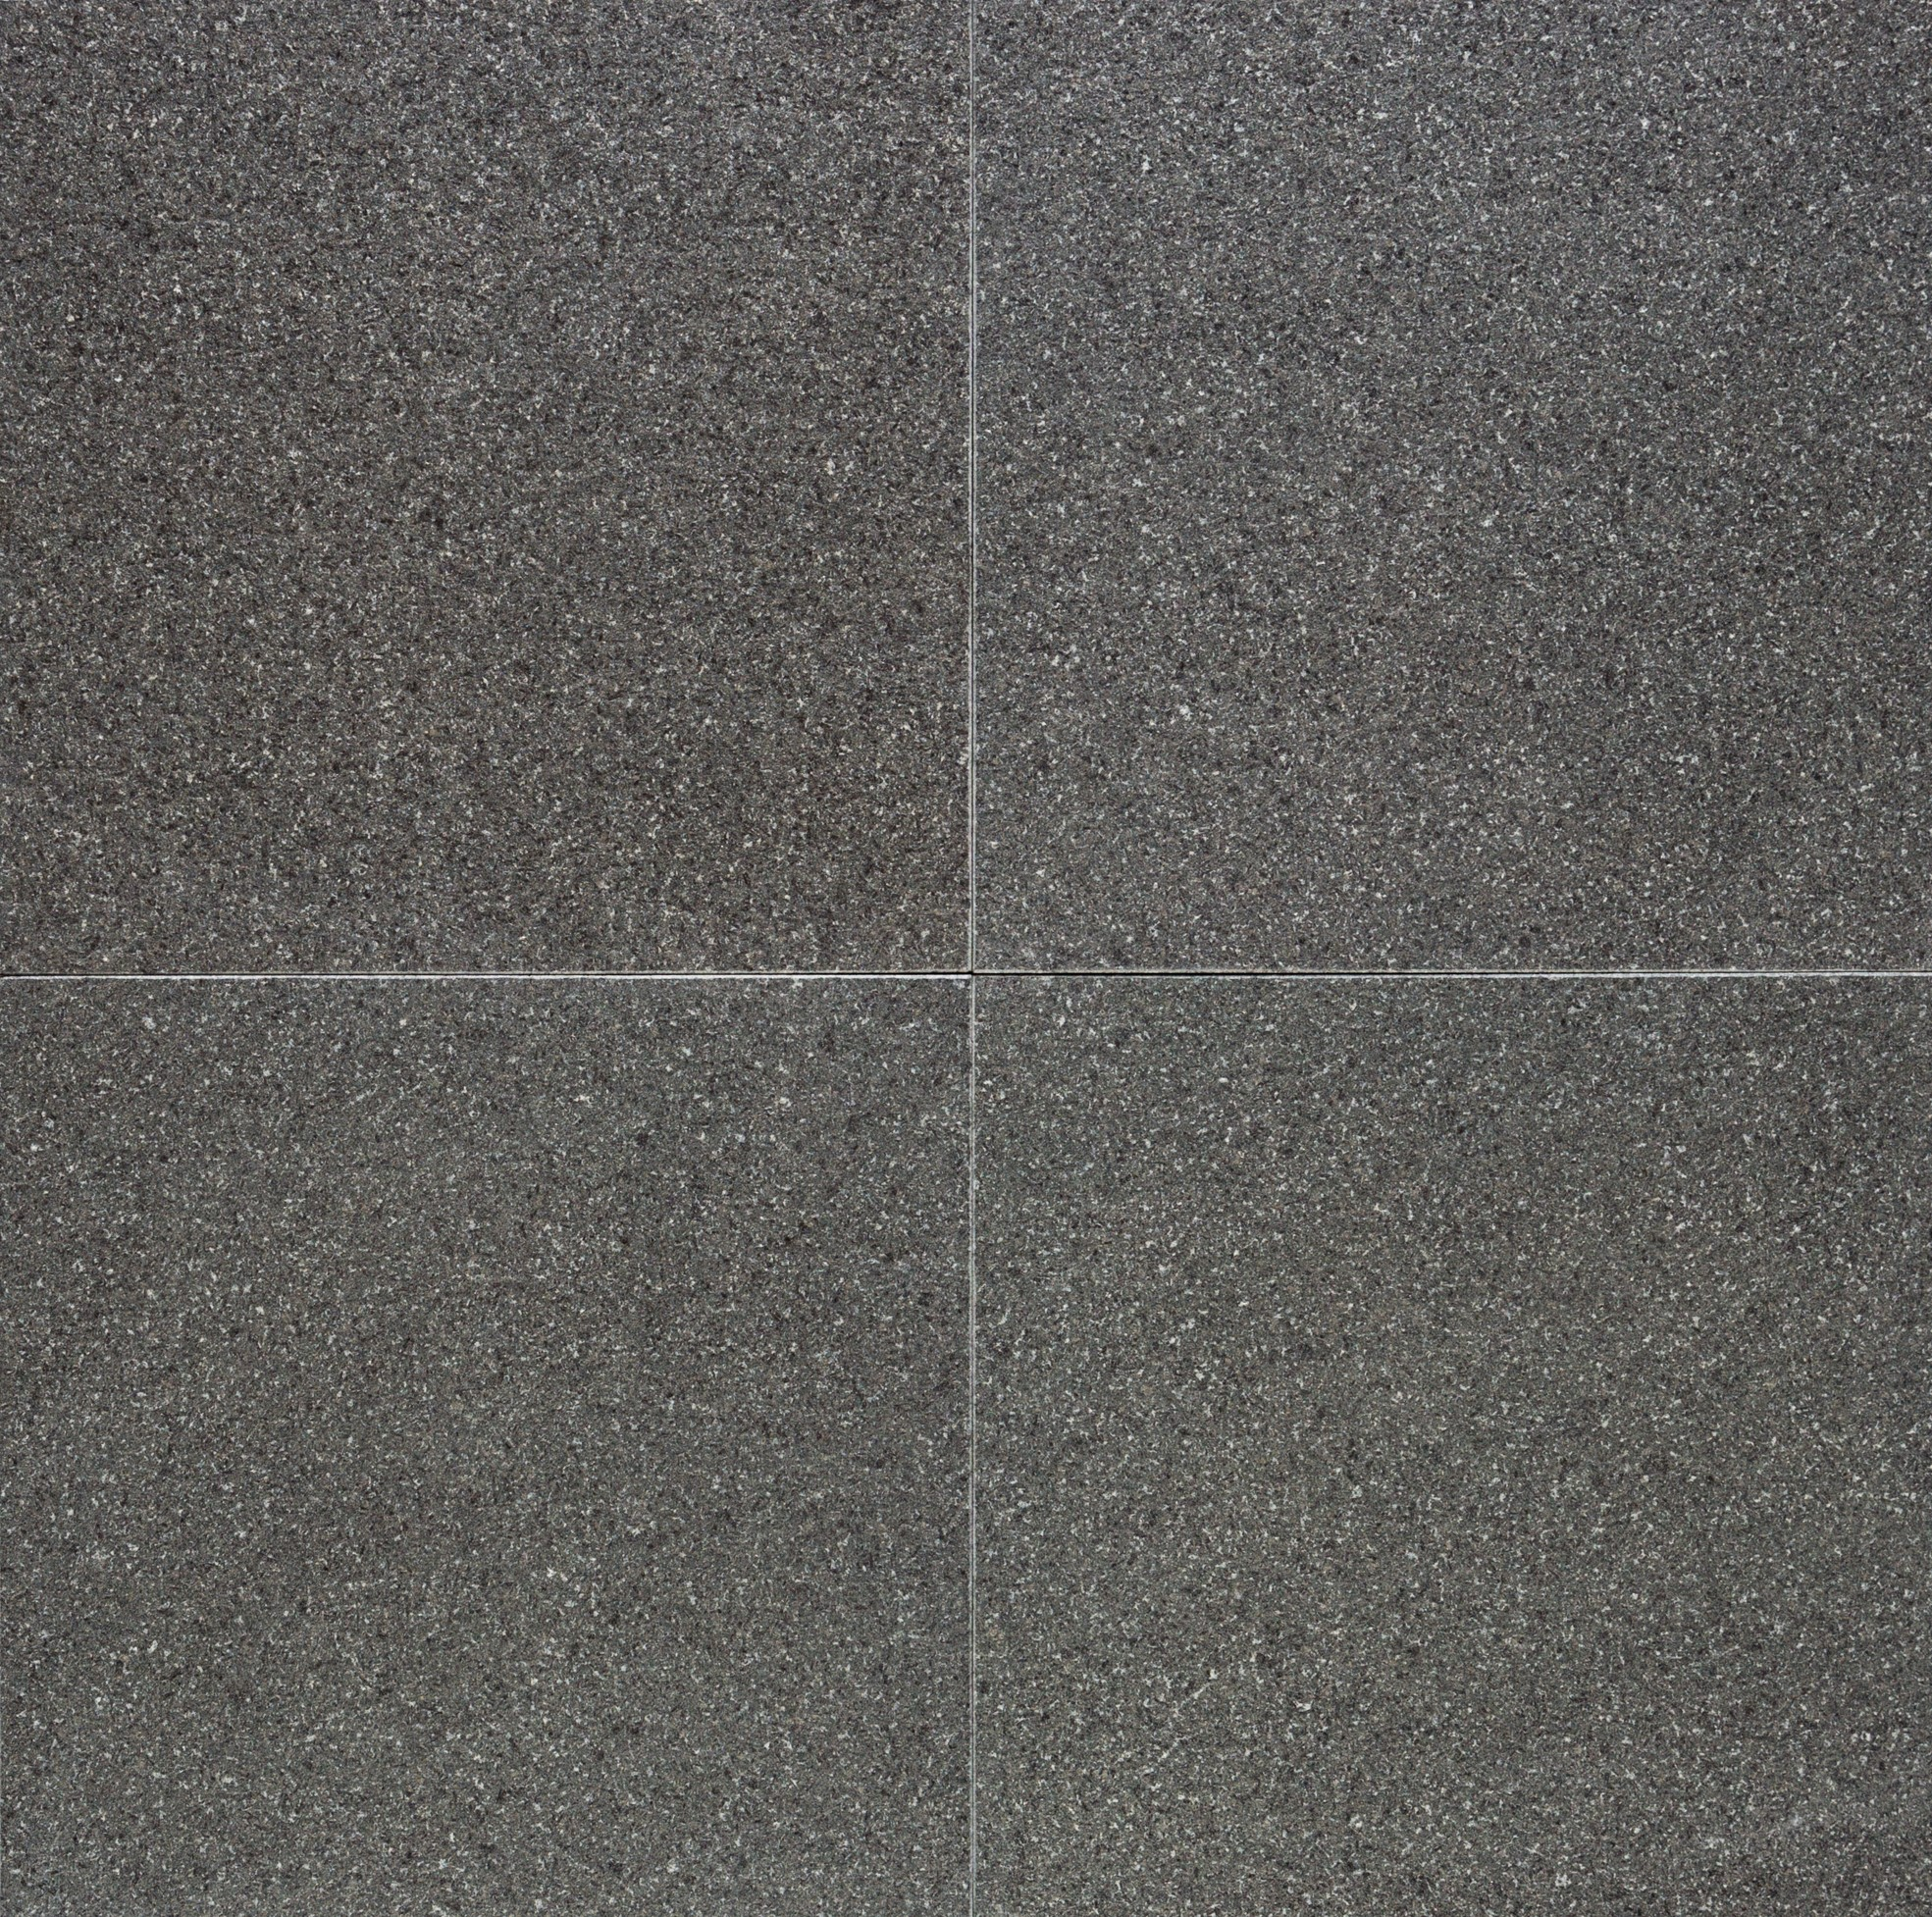 Premium Plus Black Flamed Granite Sita Tile Distributors